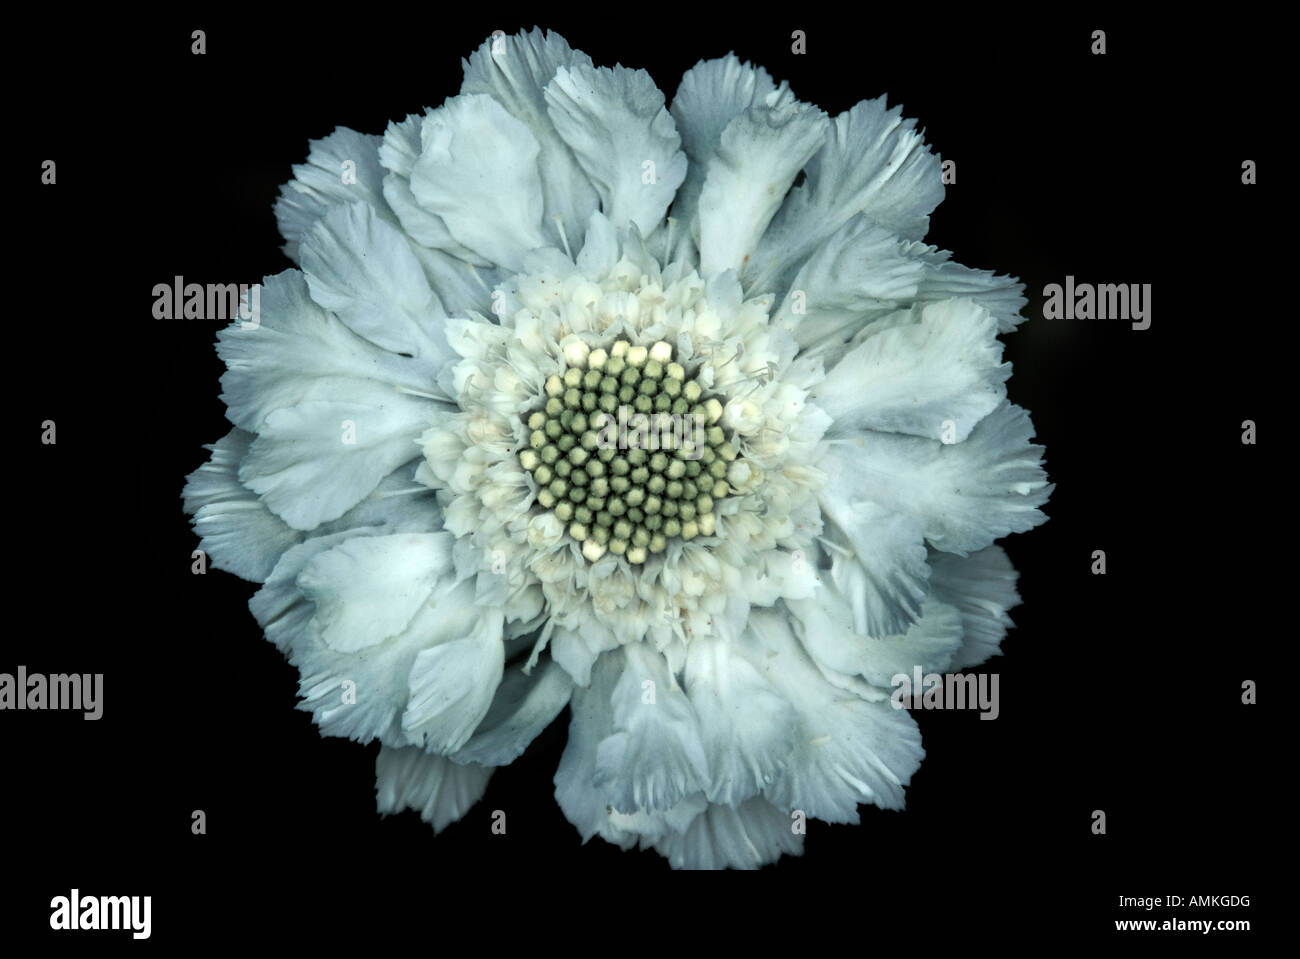 Close up of a pale blue scabious flower on a black background - Stock Image